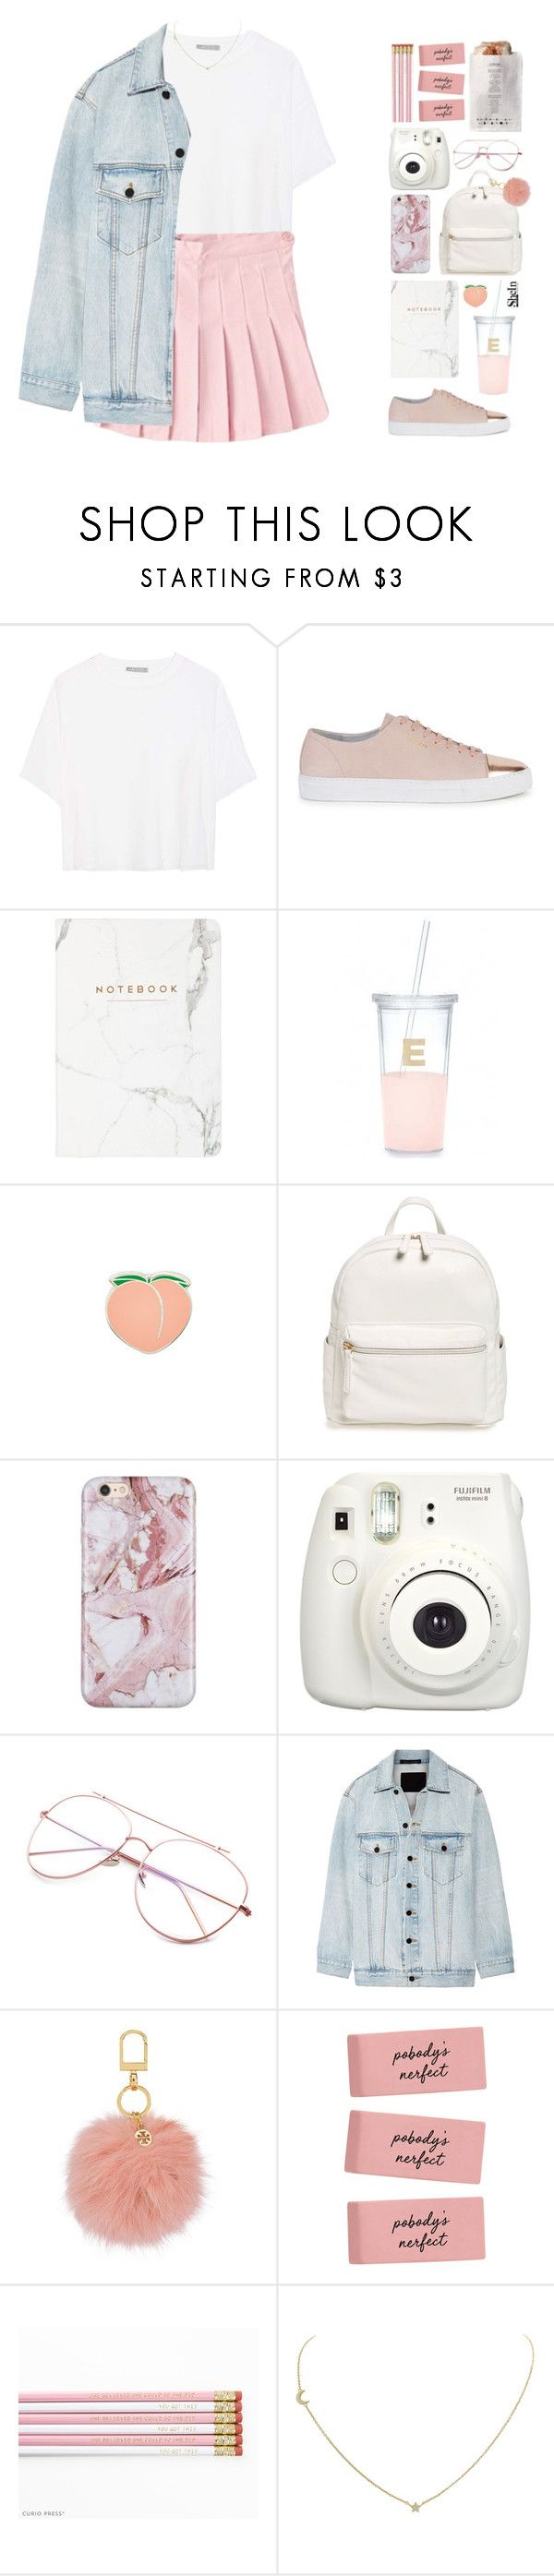 """A PINK EDUCATION (BtS look)"" by marianne-david-17 ❤ liked on Polyvore featuring Vince, Axel Arigato, Kate Spade, PINTRILL, BP., L'Agence, Fujifilm, Alexander Wang, Tory Burch and Humble Chic"